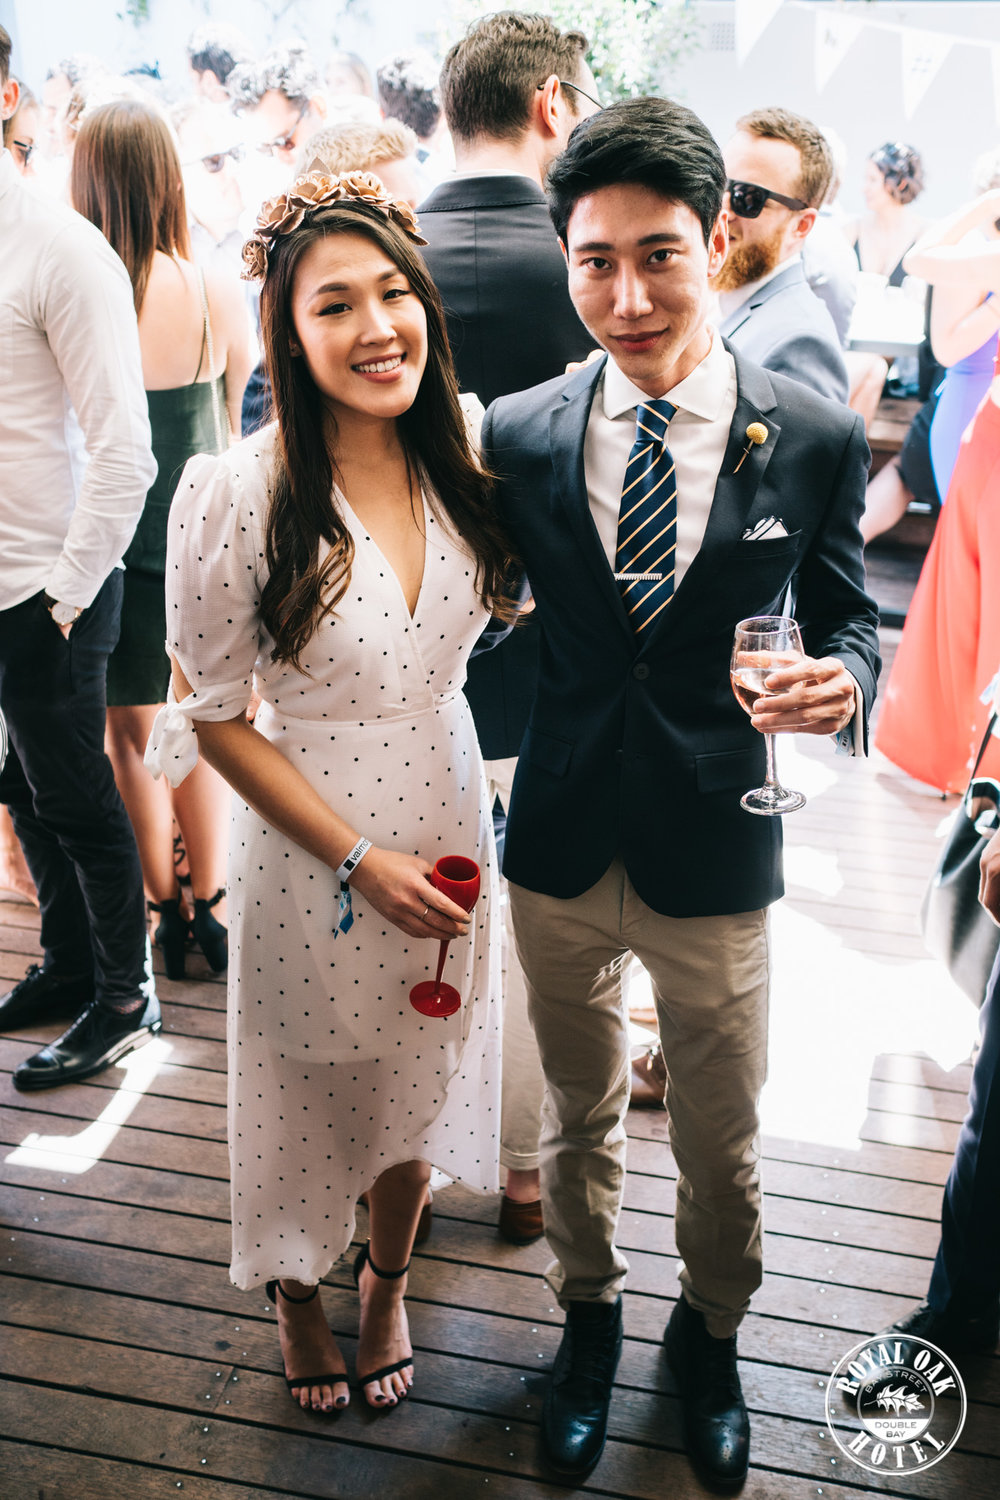 ROH.Melbourne.Cup.By.Aristo.Risi-170.jpg